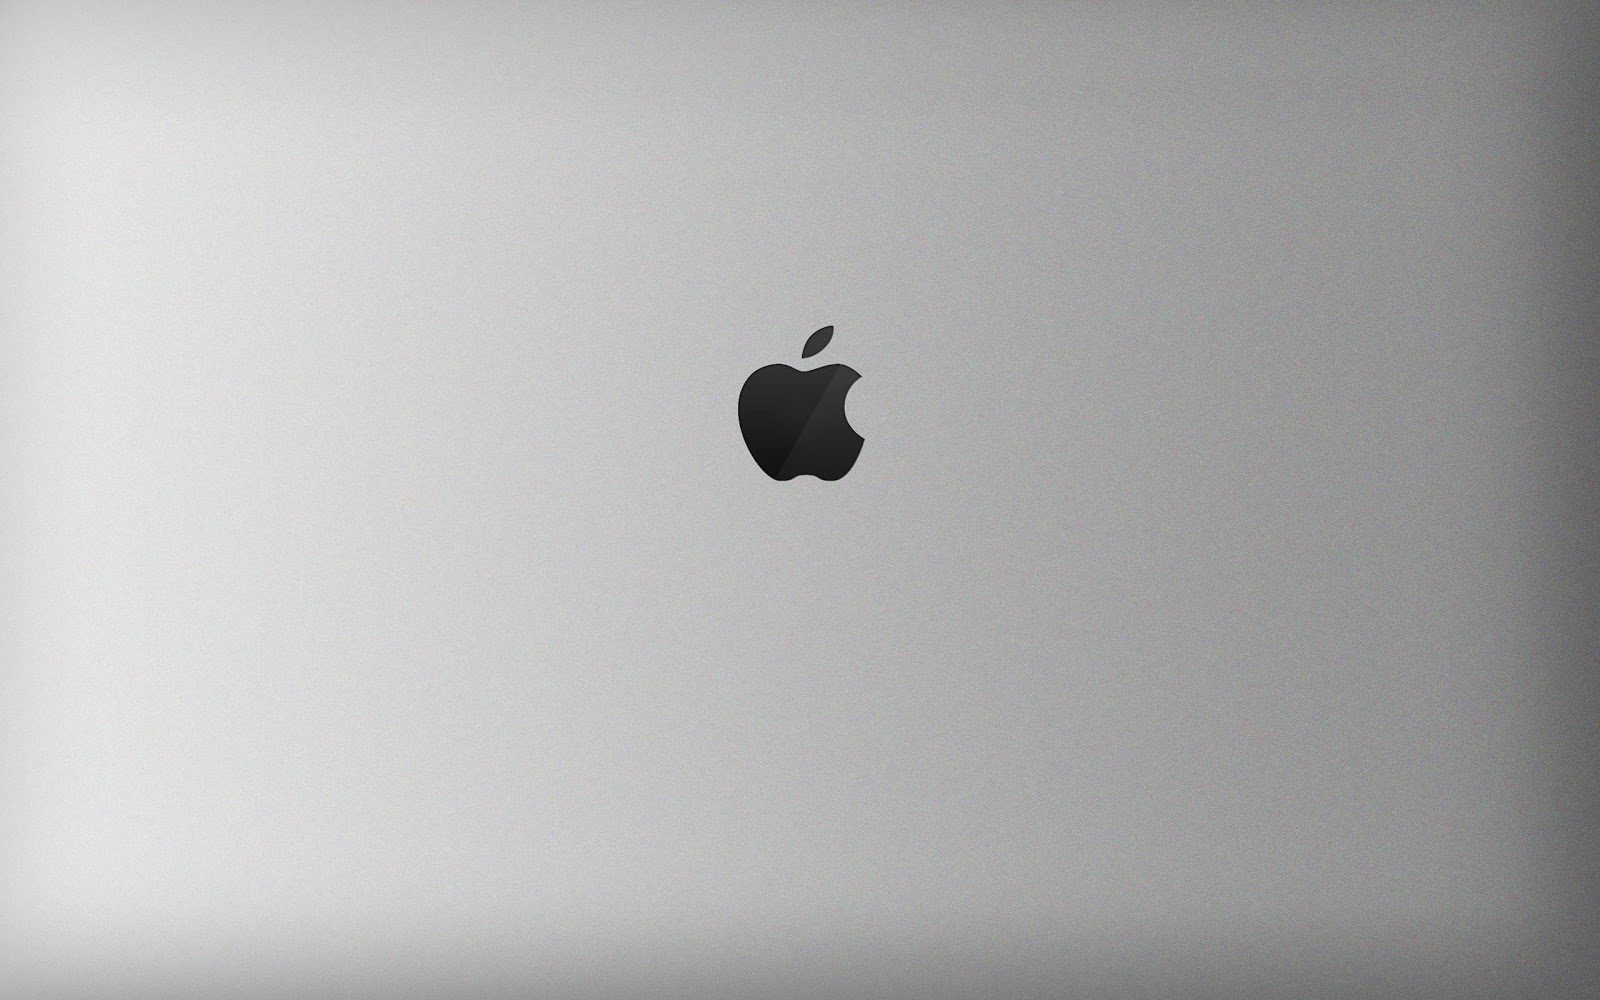 Macbook Desktop Wallpaper